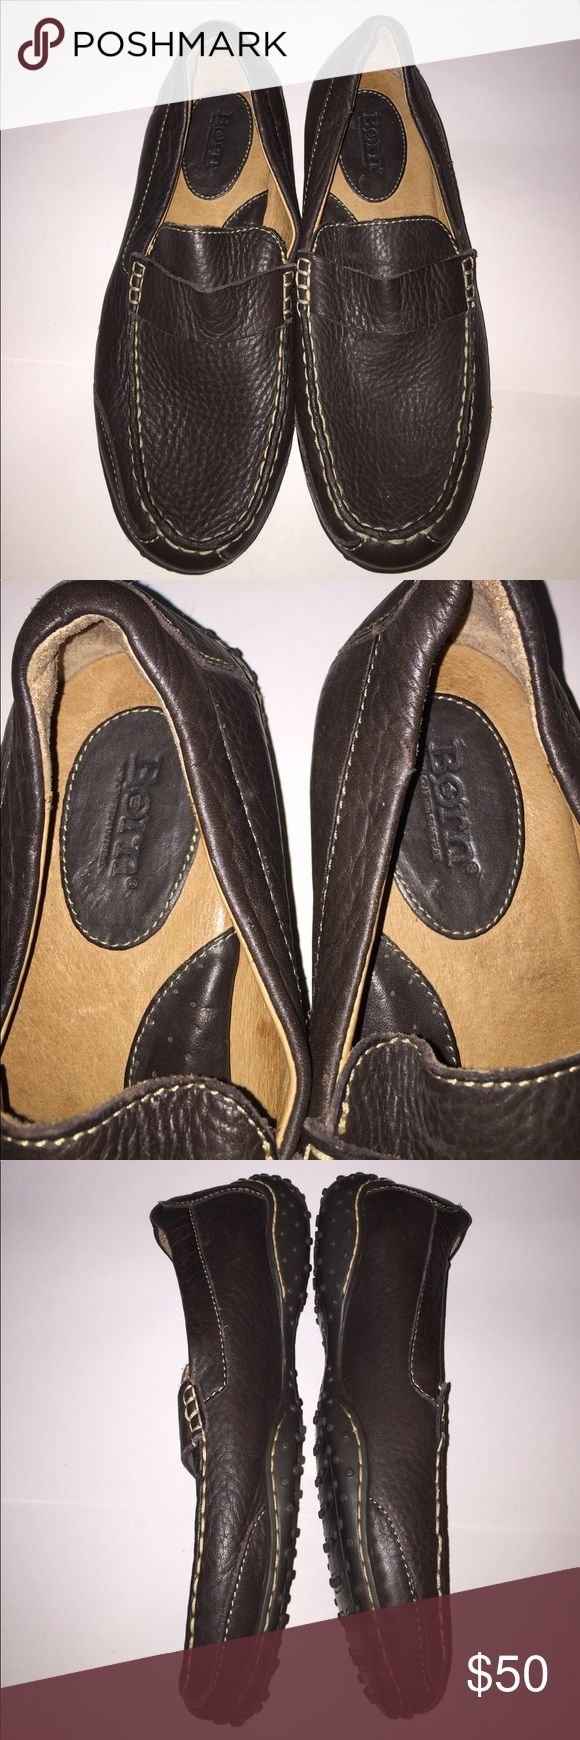 Born Brown Pebbled Leather Shoes Size 9.5 Born Brown Pebbled Leather Shoes Size 9.5. They are in very good condition. Born Shoes Flats & Loafers